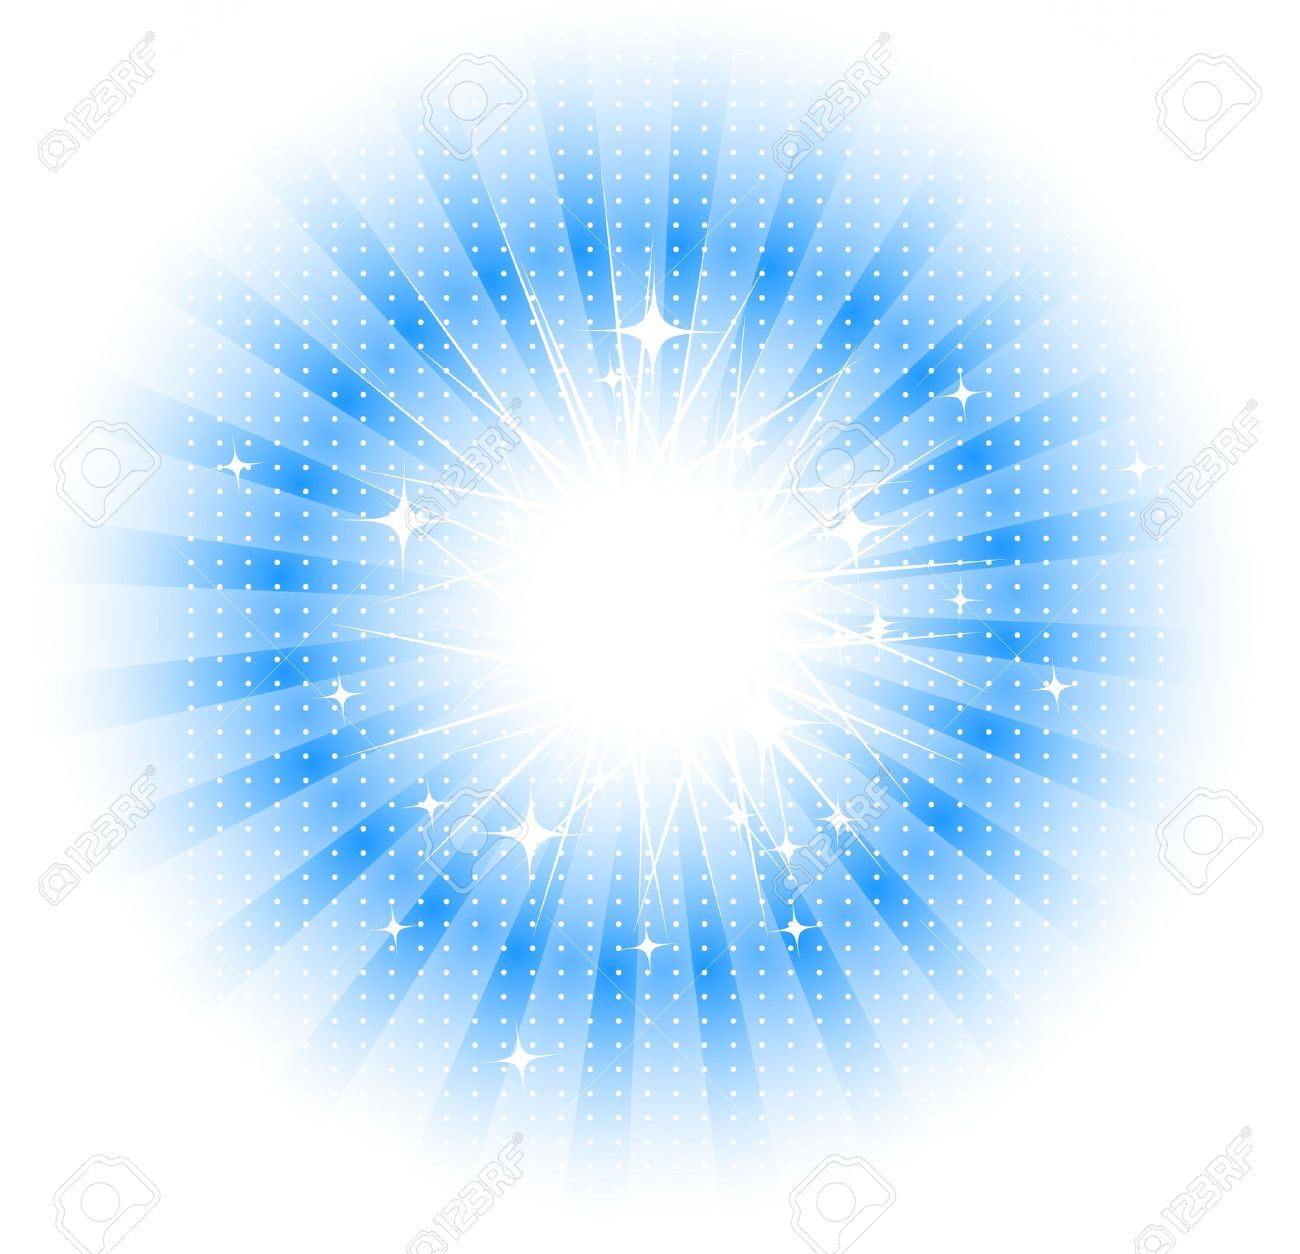 Sun Shining PNG HD - 146238